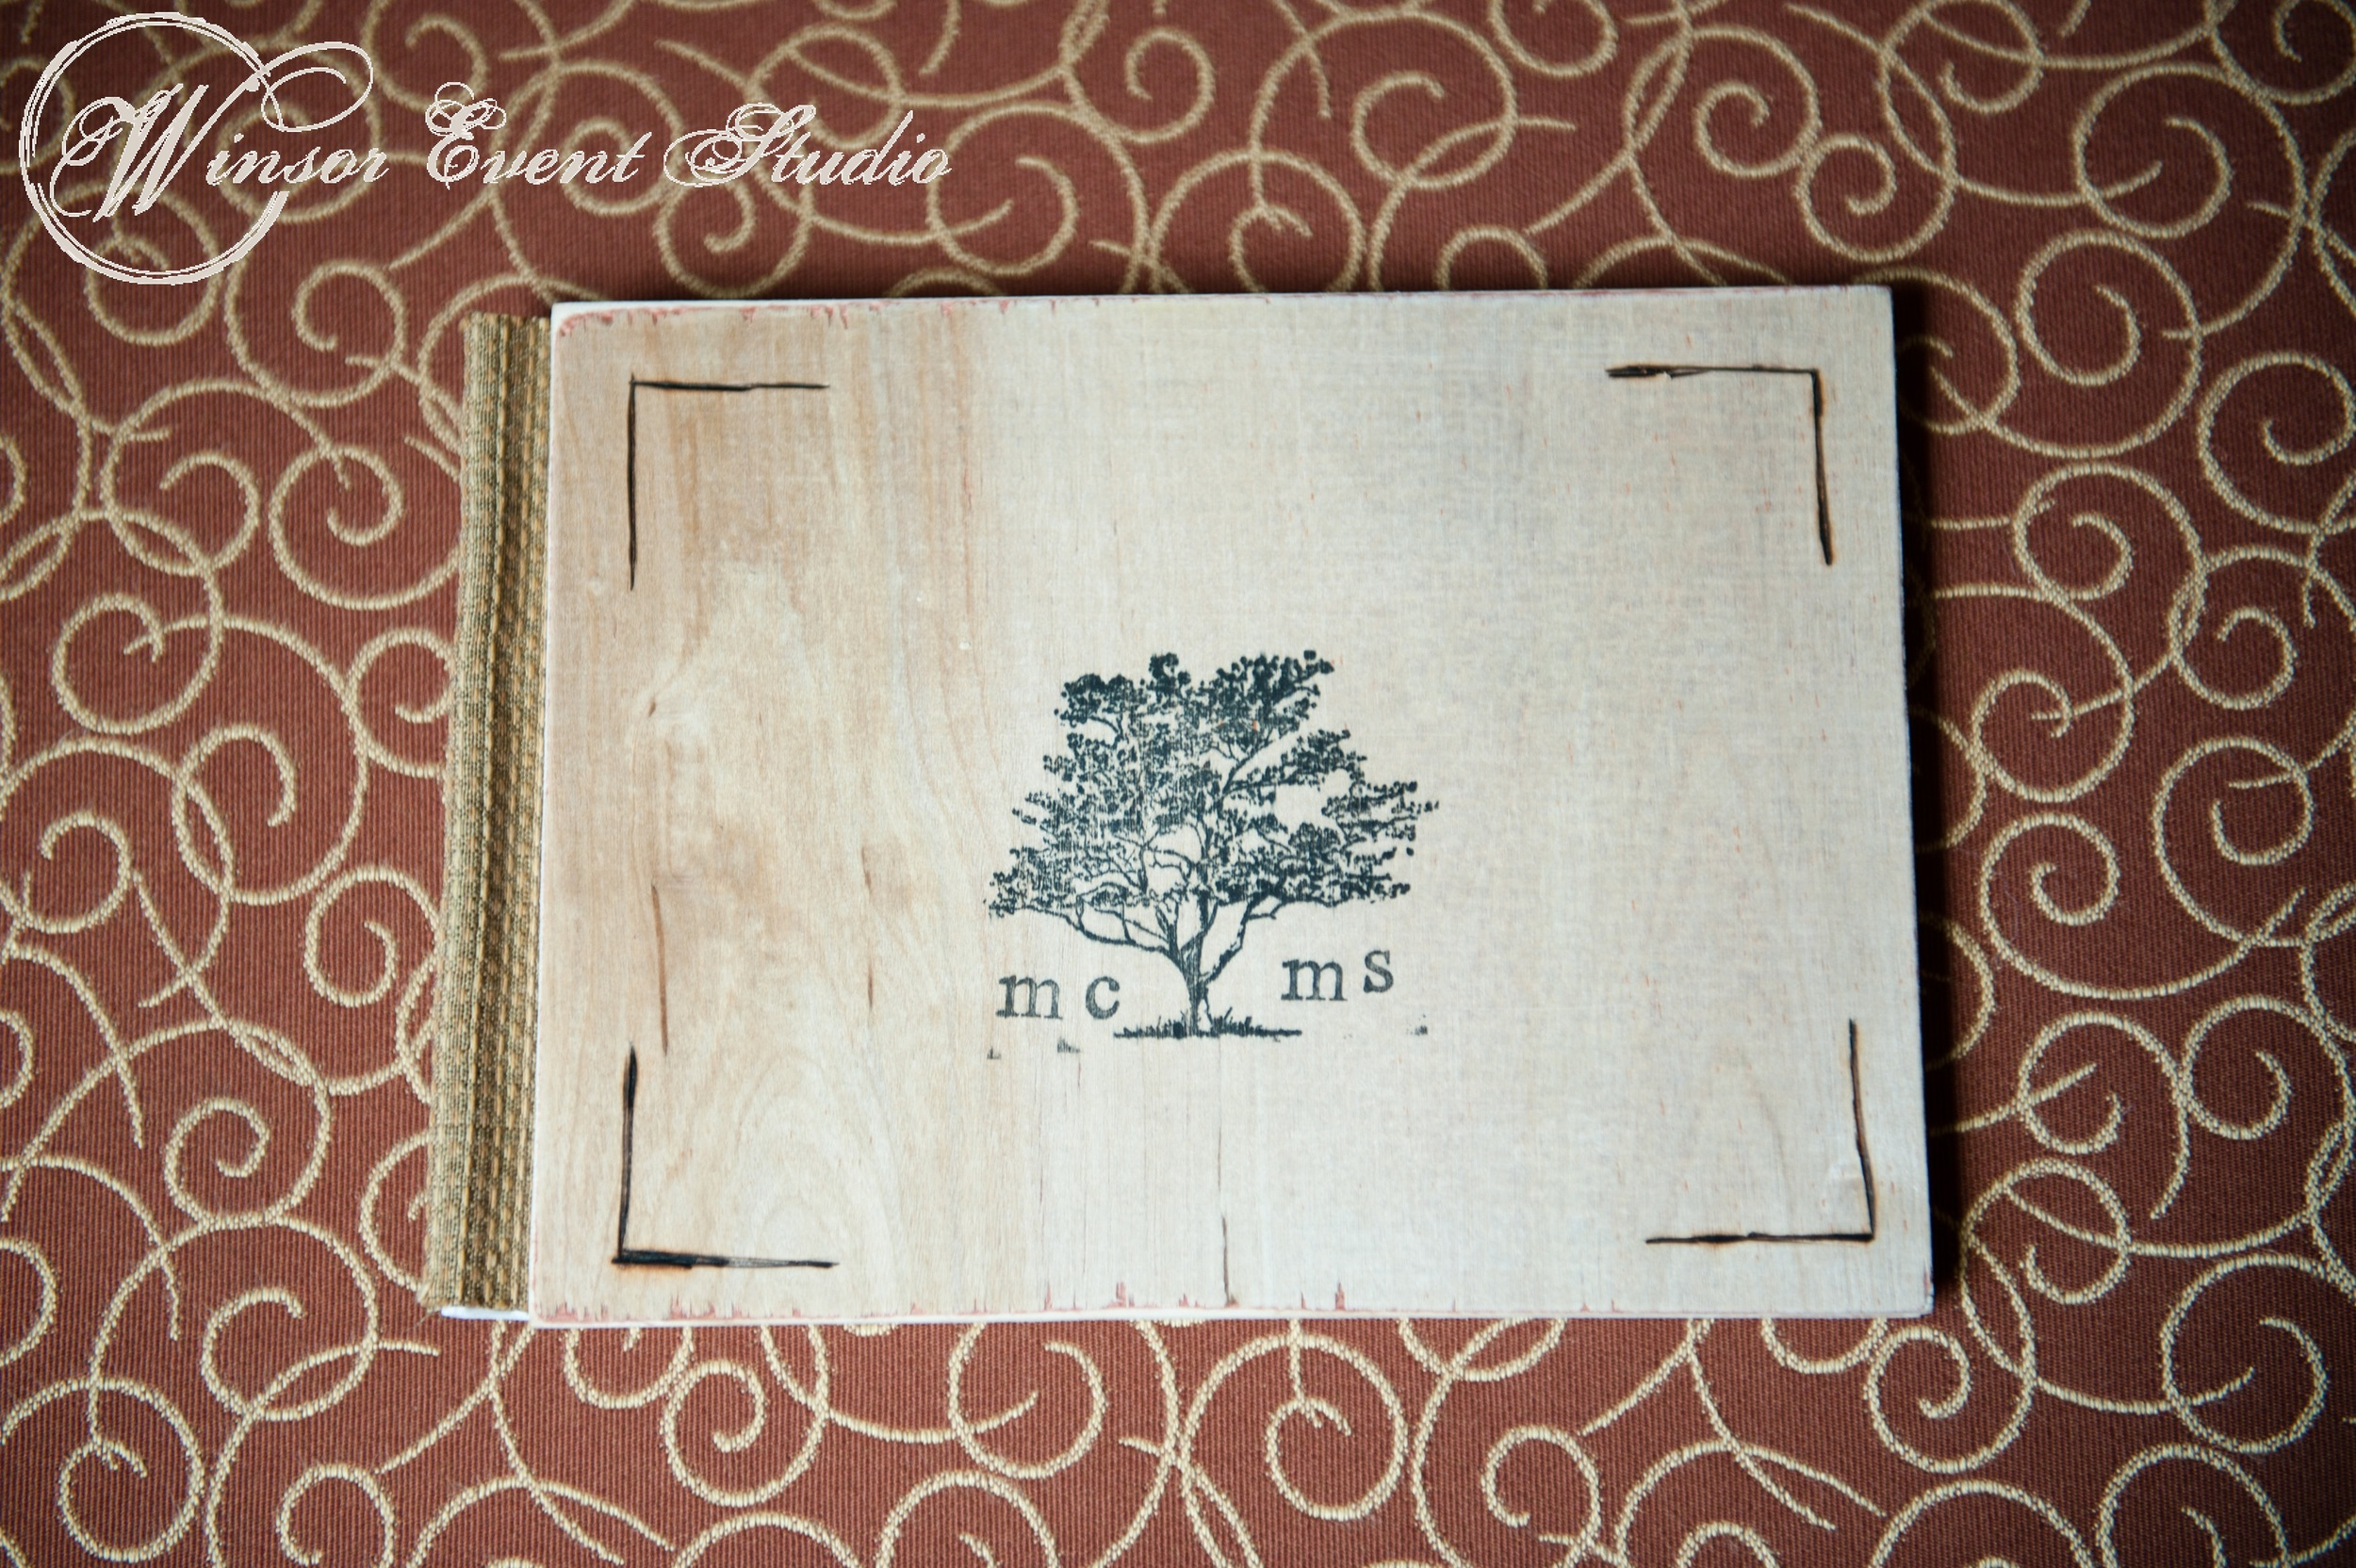 Guests received book-style invitations made by hand by the bride and her father